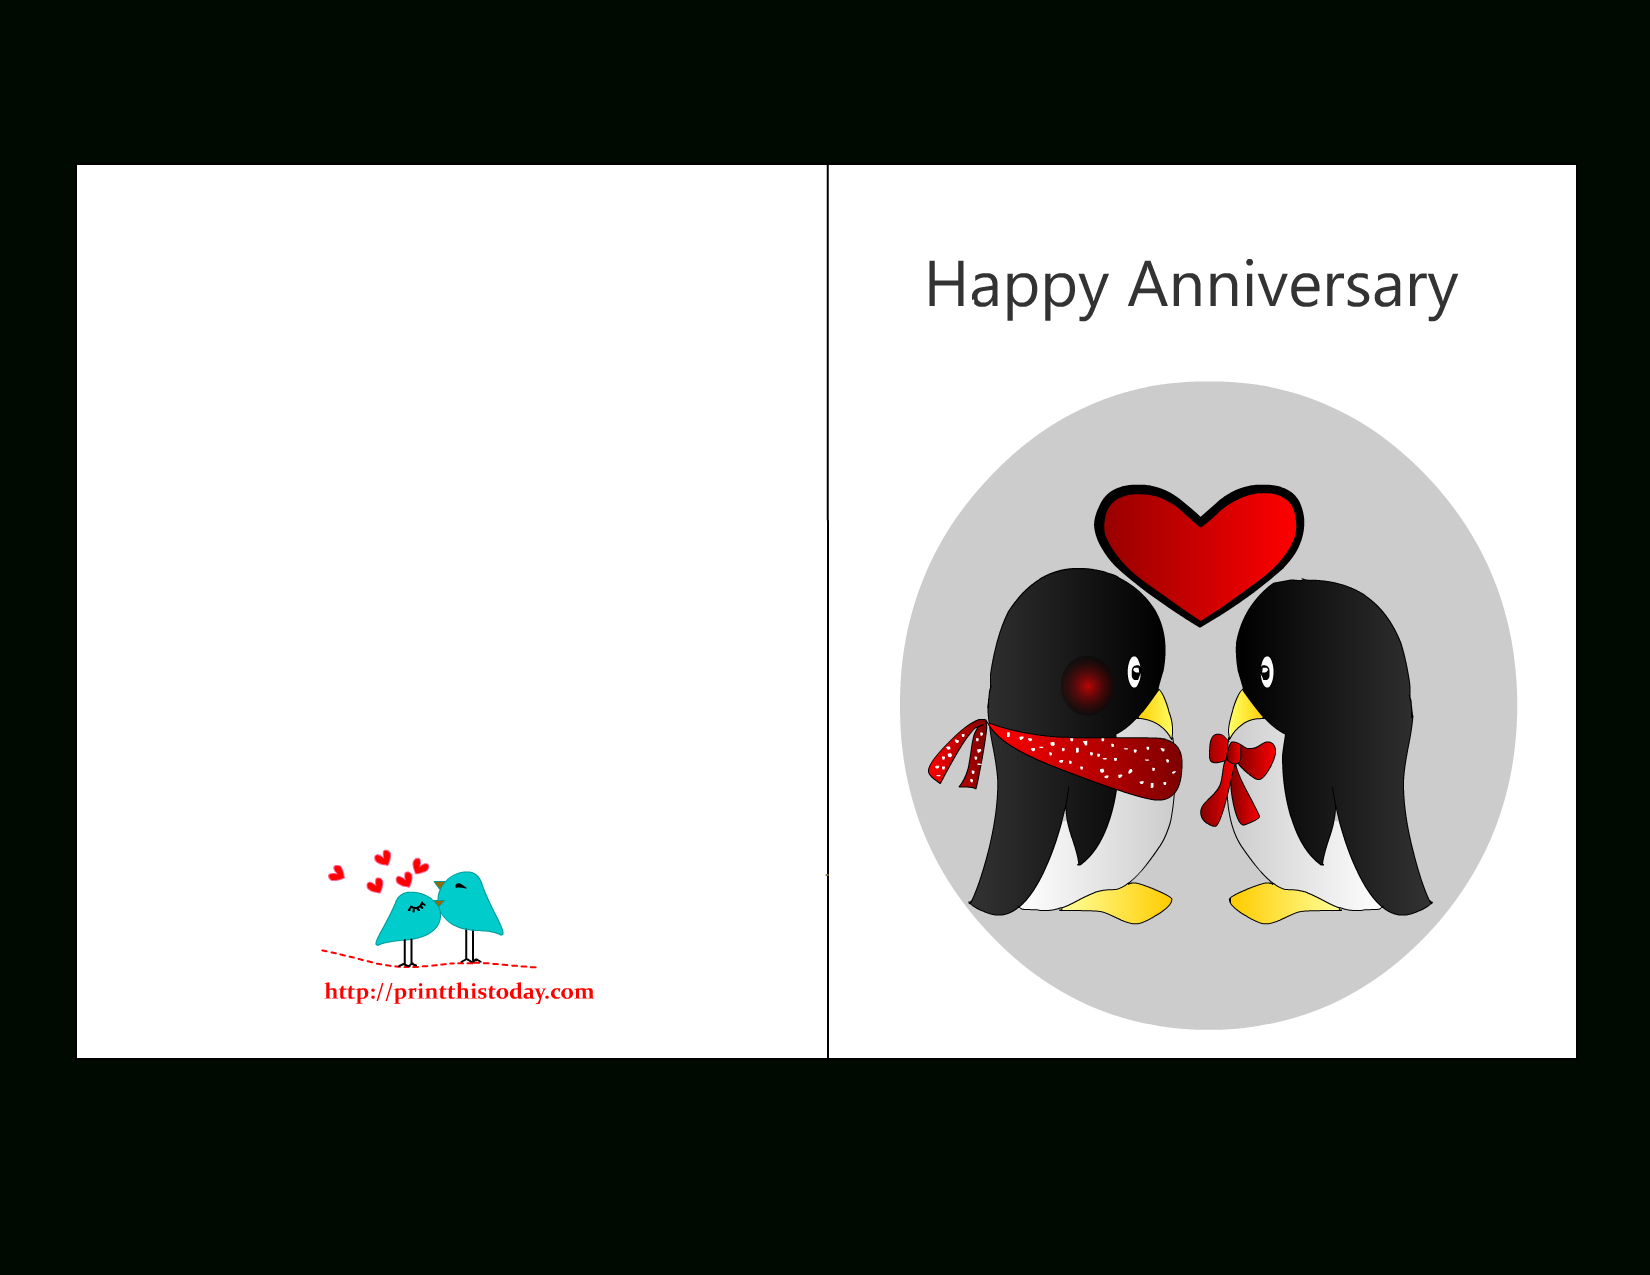 Accomplished Printable Anniversary Cards Free Online Inside Anniversary Card Template Word